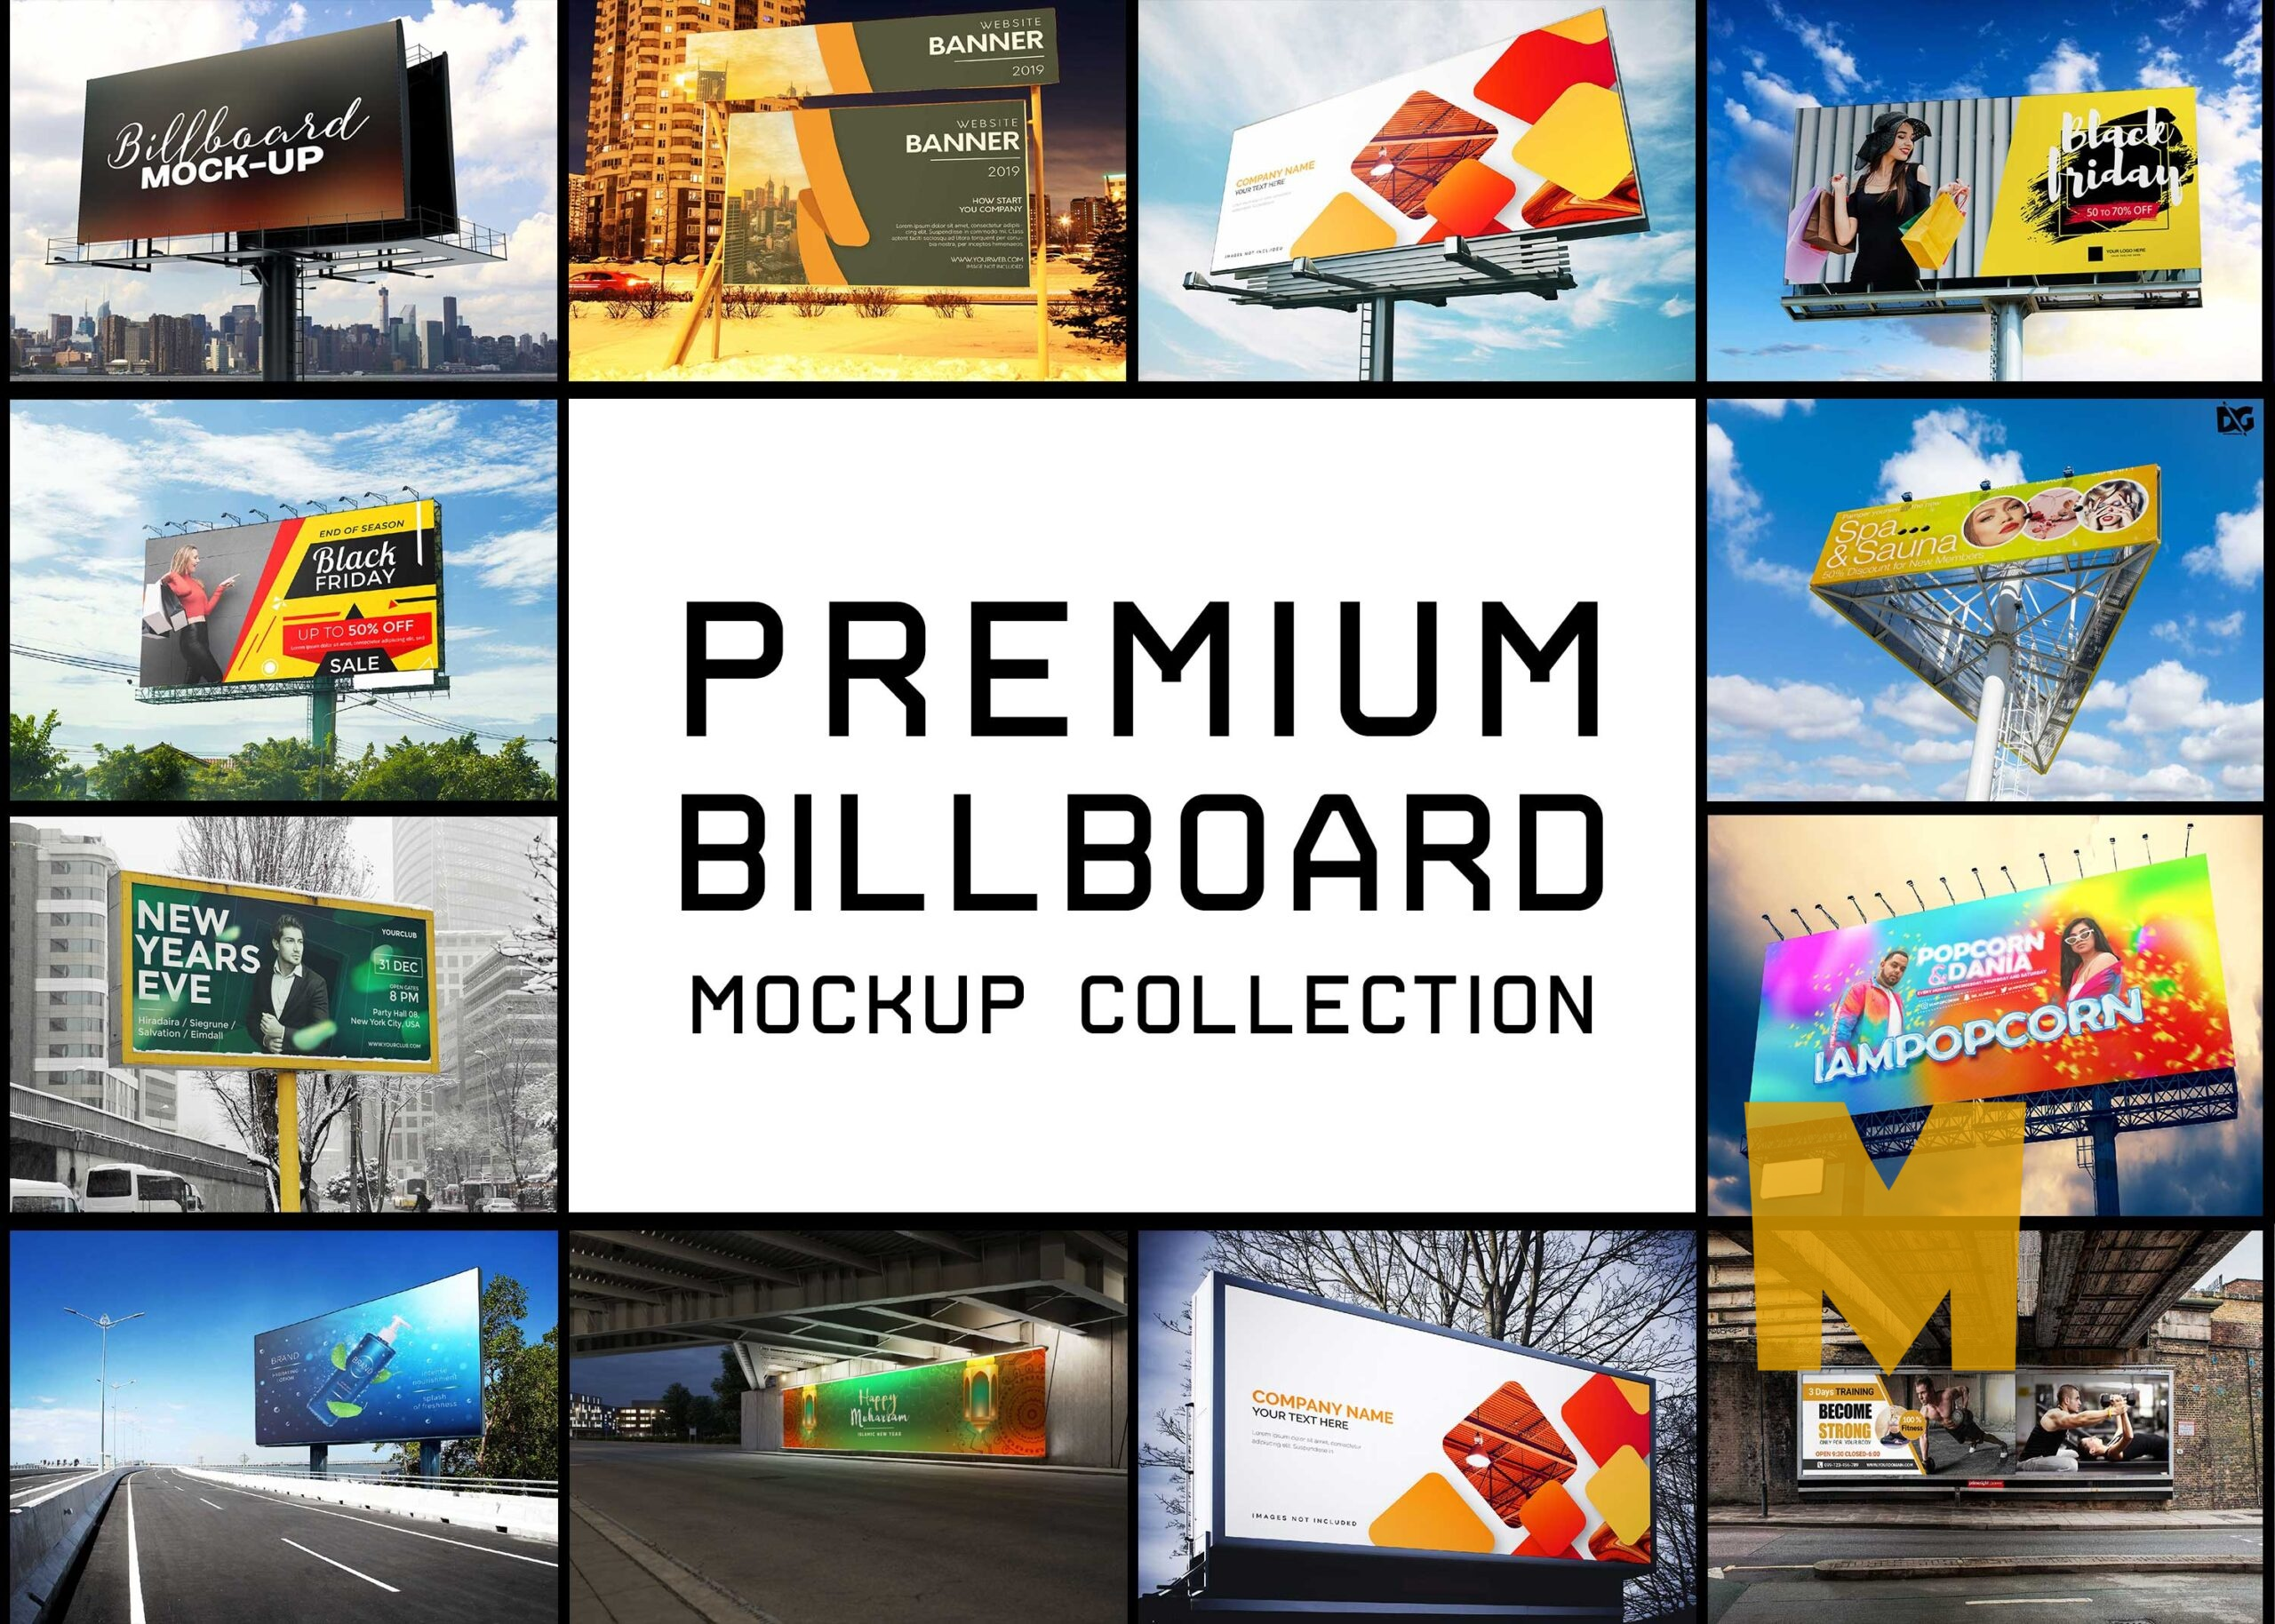 Top 20 Billboard Mockup Collection